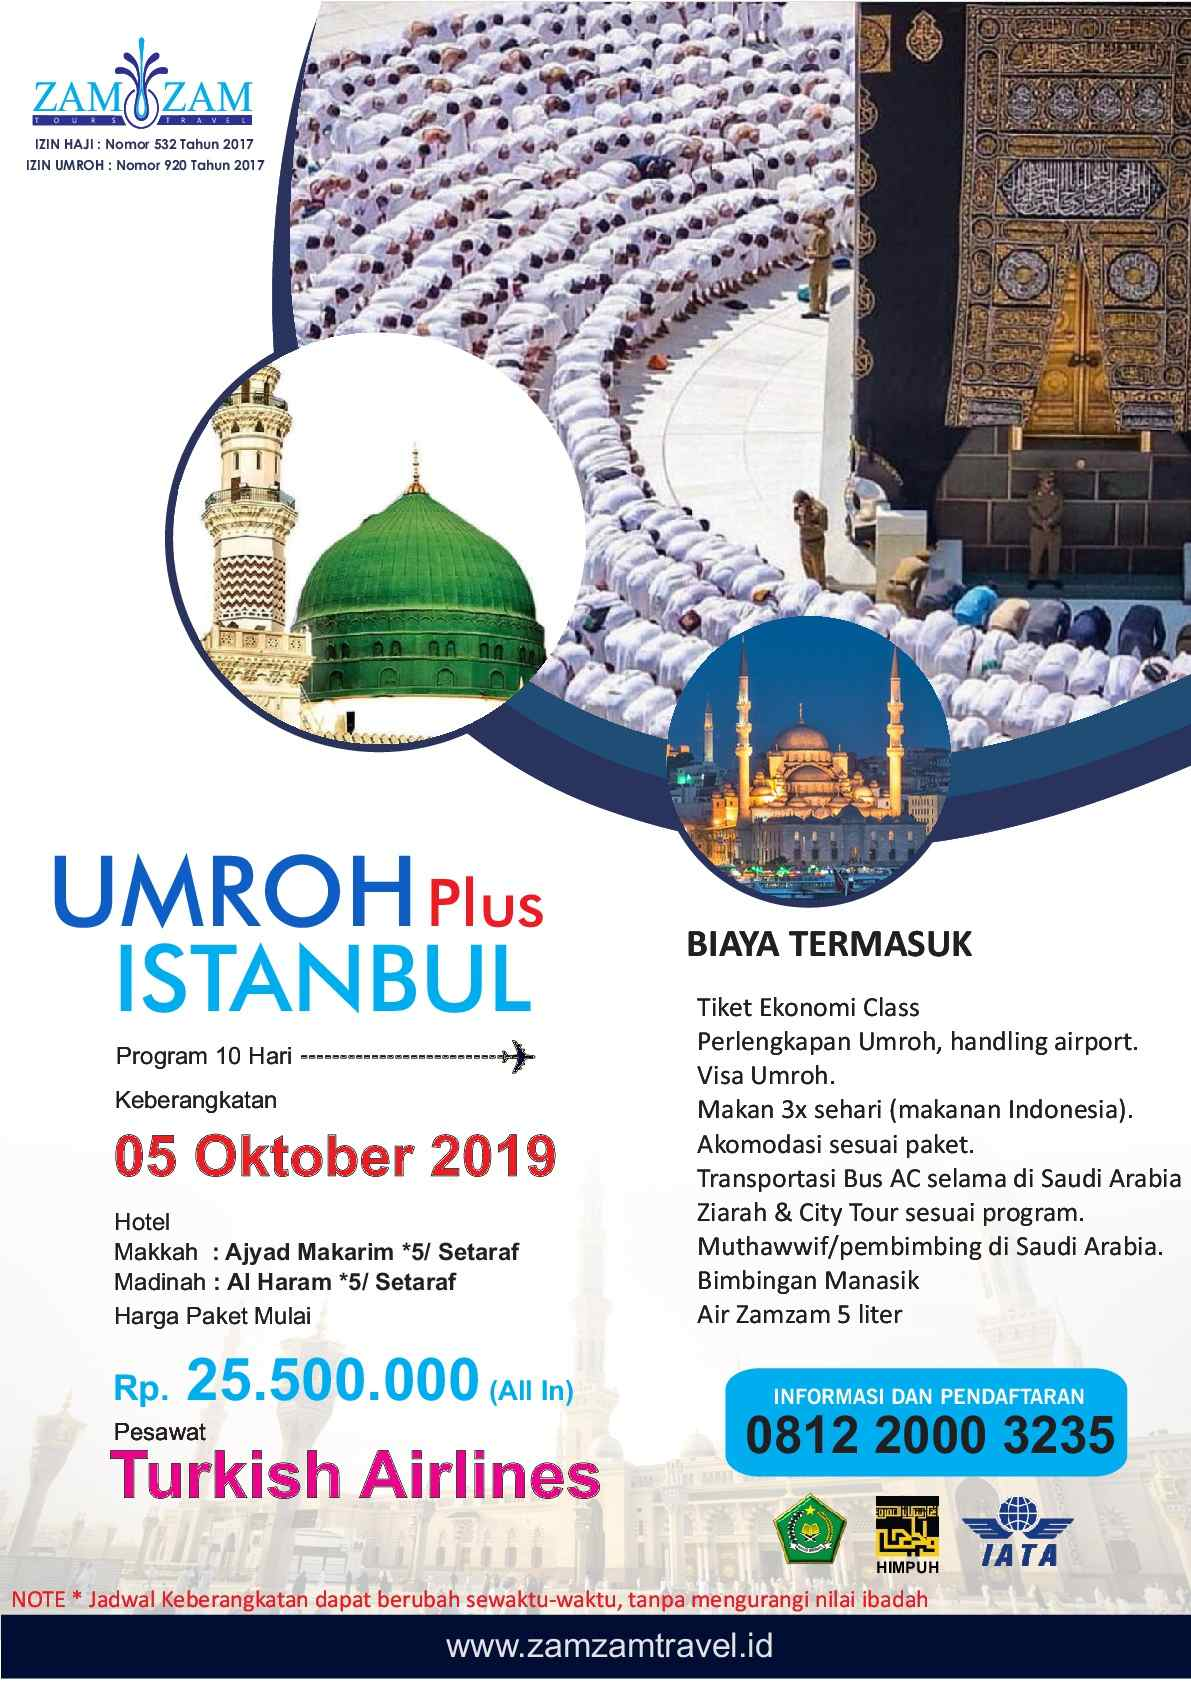 10 hari by turkish airlines umroh plus city tour istanbul 5 okt 2019